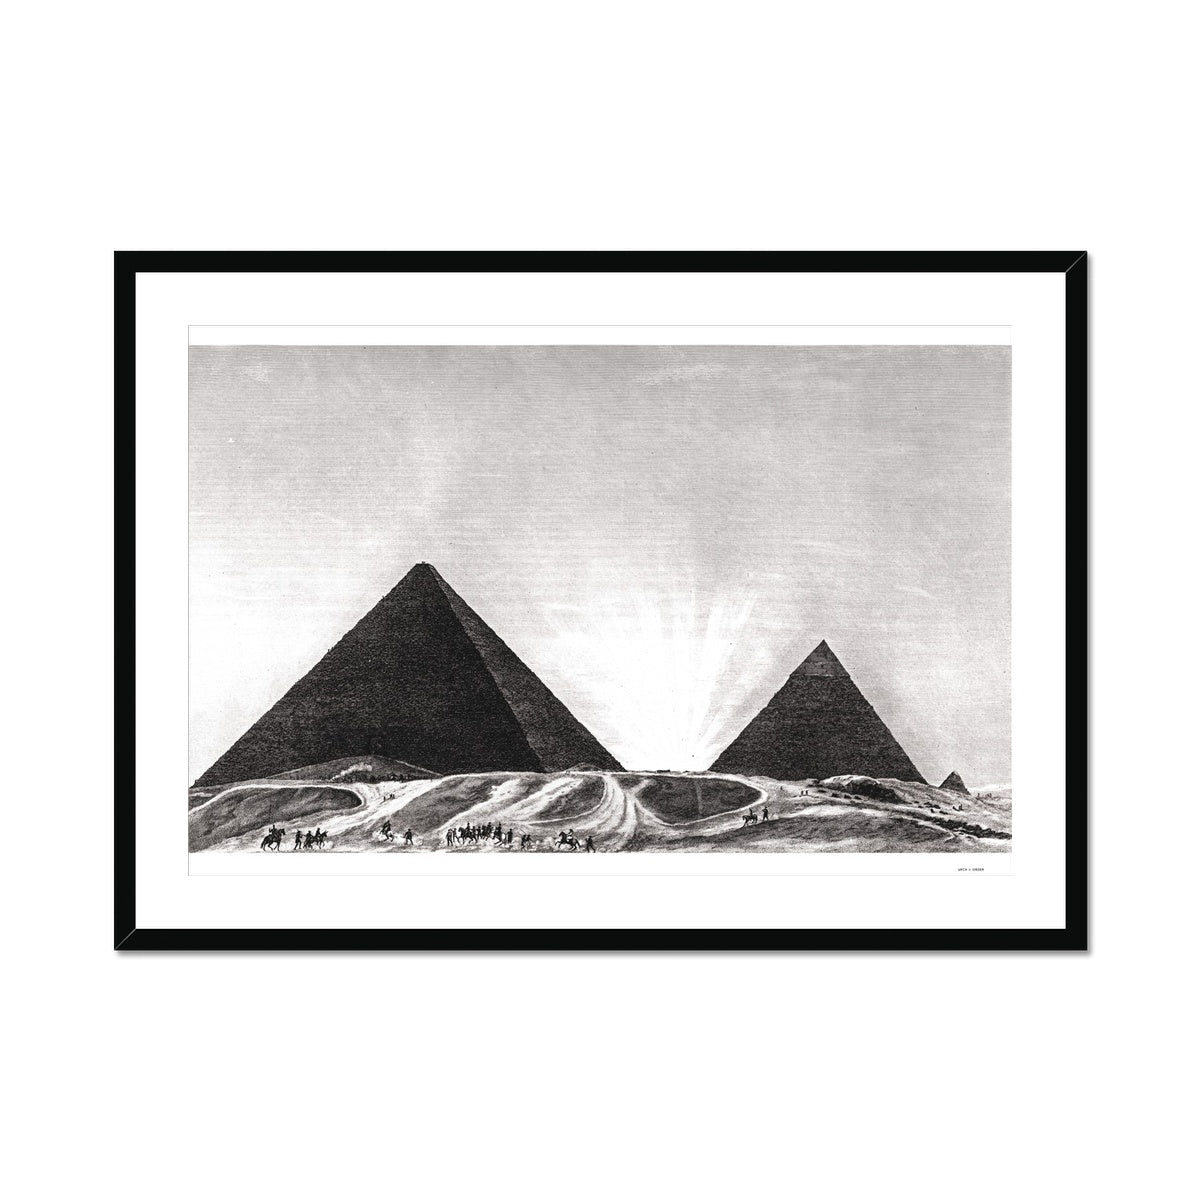 Entrance to the Grand Pyramid - Memphis Egypt -  Framed & Mounted Print